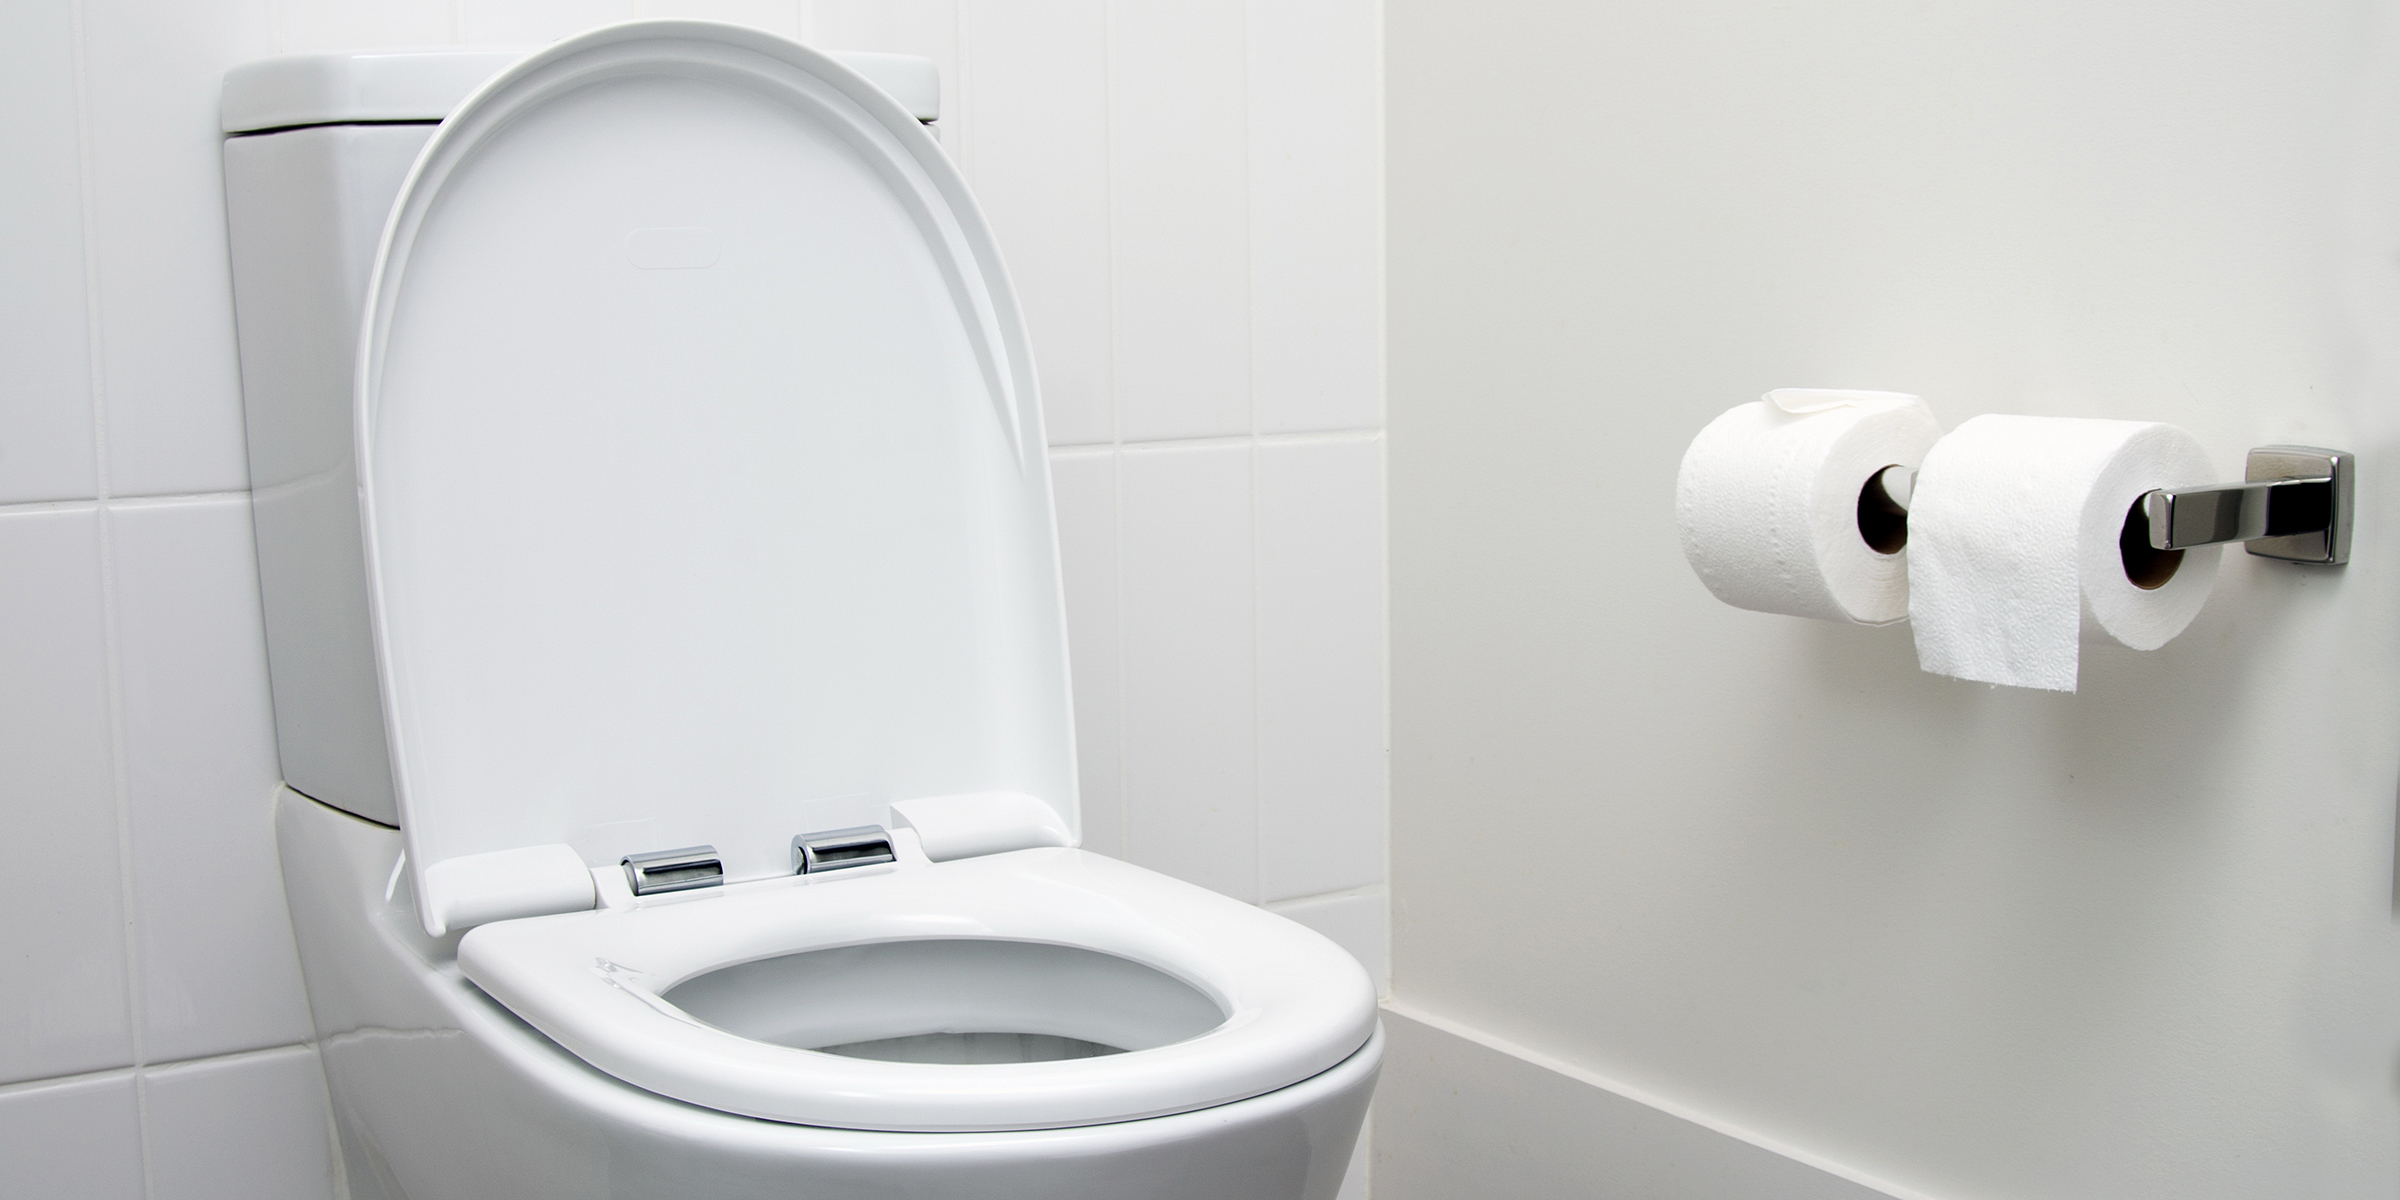 Groovy Heres Why You Should Always Close The Toilet Lid When You Flush Onthecornerstone Fun Painted Chair Ideas Images Onthecornerstoneorg